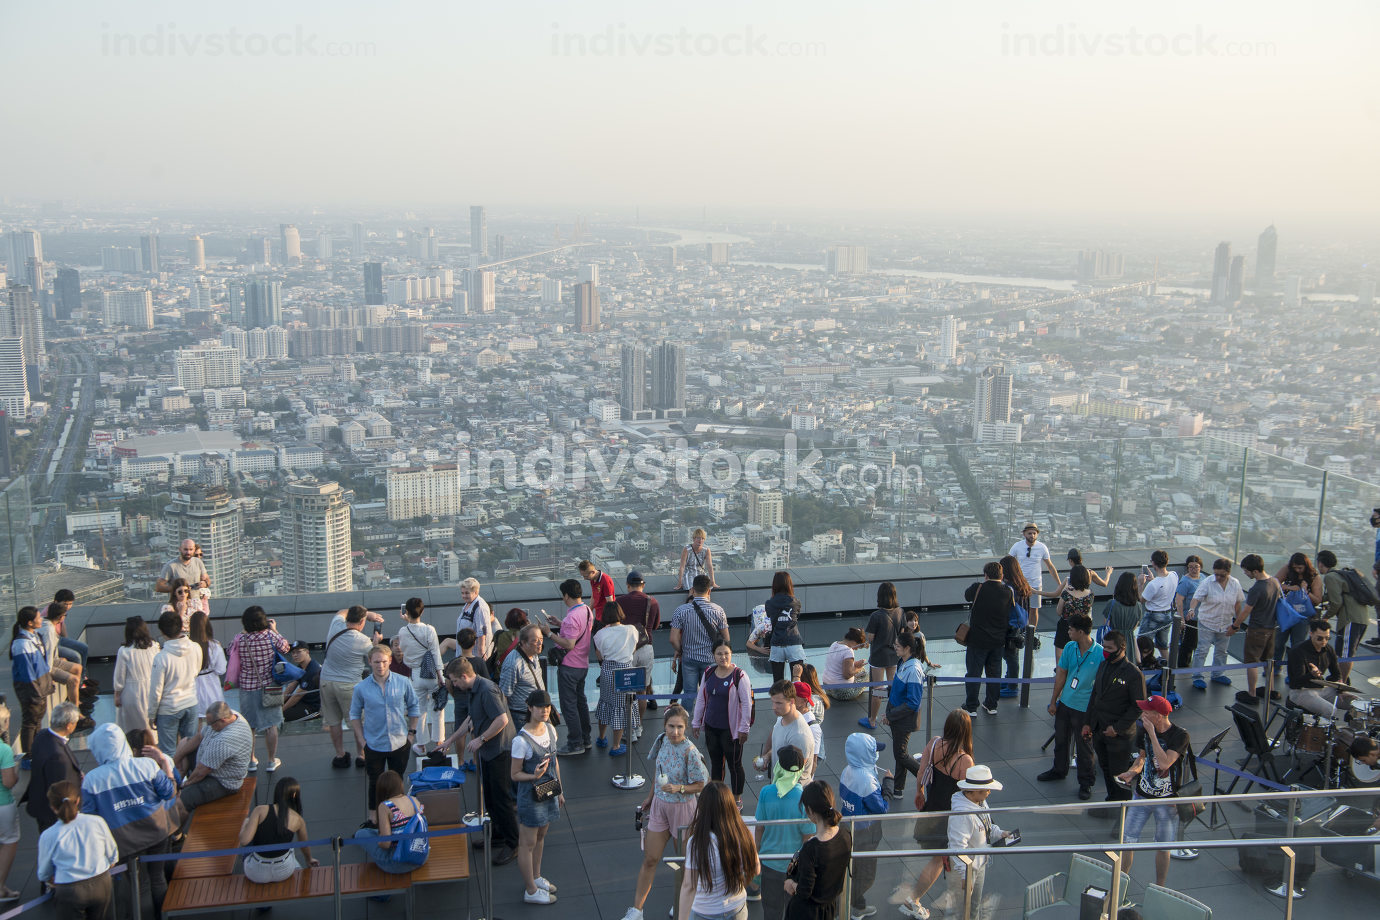 November, 2019 people at the Roof Top of the Maha Nakhon Building in Sathon in the city of Bangkok in Thailand